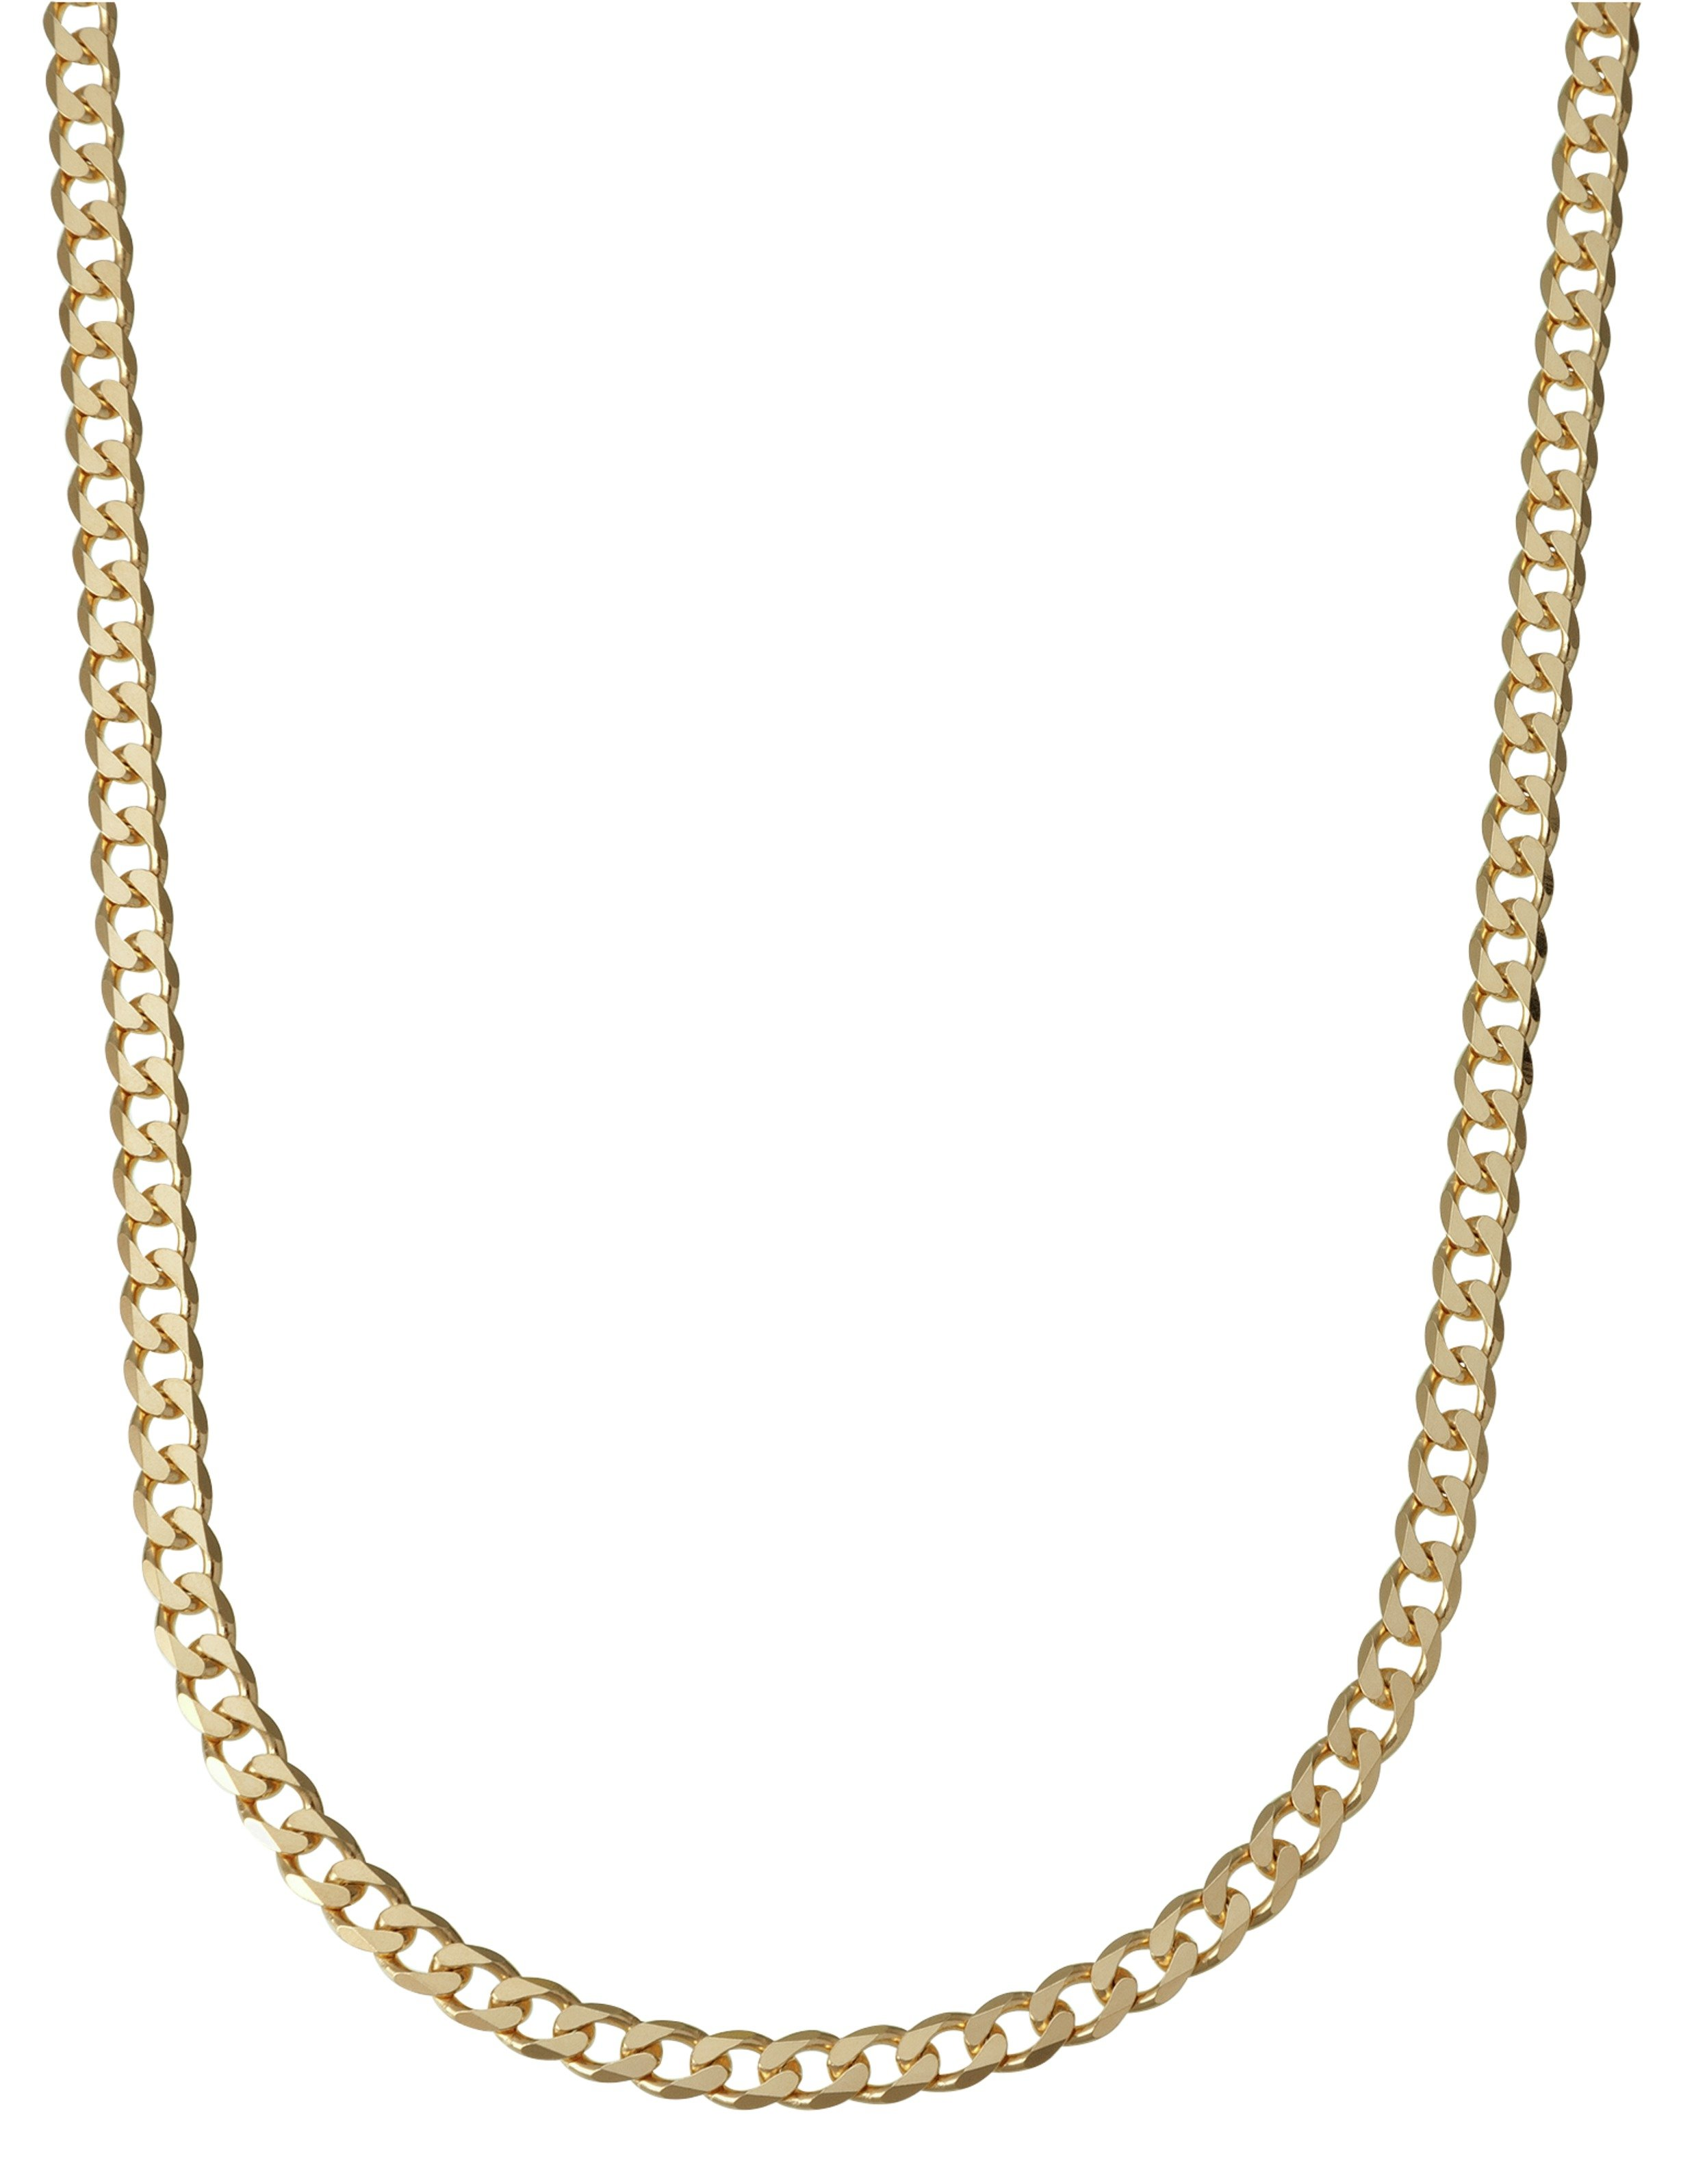 9ct Gold Love Pendant with 9ct Gold diamond cut curb chain